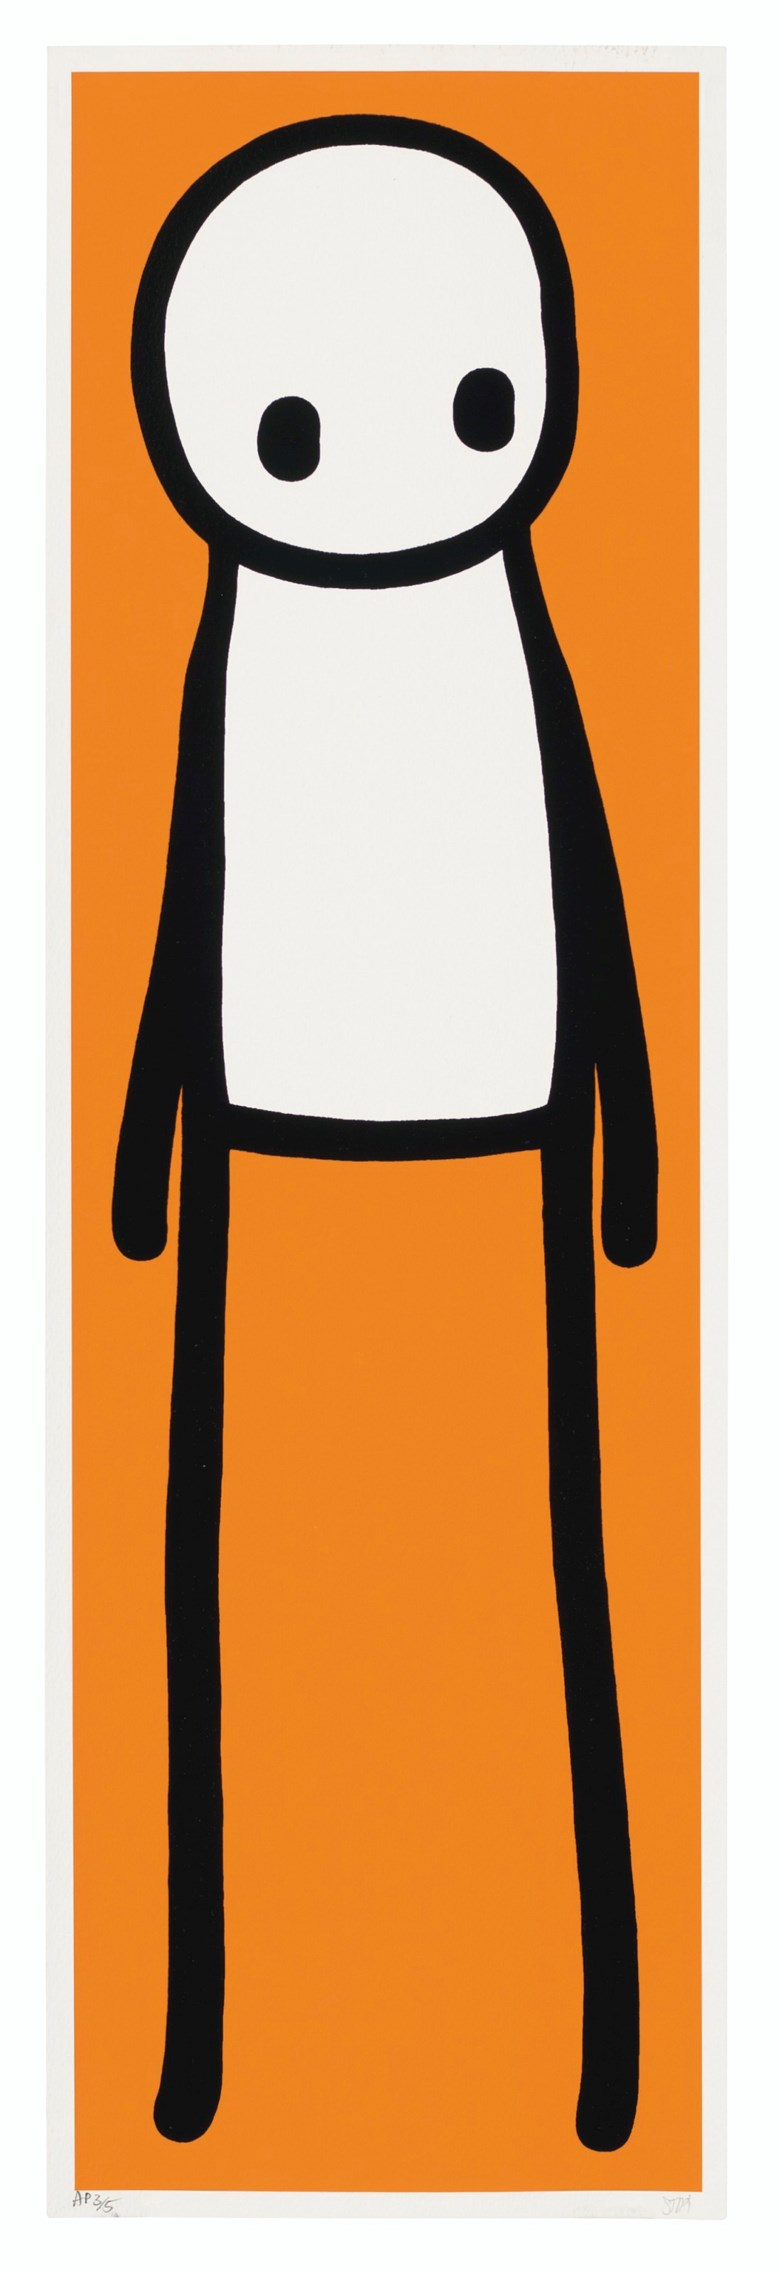 Stik (b. 1979), Book deluxe edition (Orange), 2015. Screenprint in glossy black enamel with Giclée in orange on stiff wove paper. Image 29⅛ x 8⅗ in. Sheet 29⅞ x 9⅖ in (Image 74 x 22 cm. Sheet 75.8 x 24 cm). Estimate £20,000-30,000. Offered in Prints & Multiples on 18 March 2020 at Christie's in London